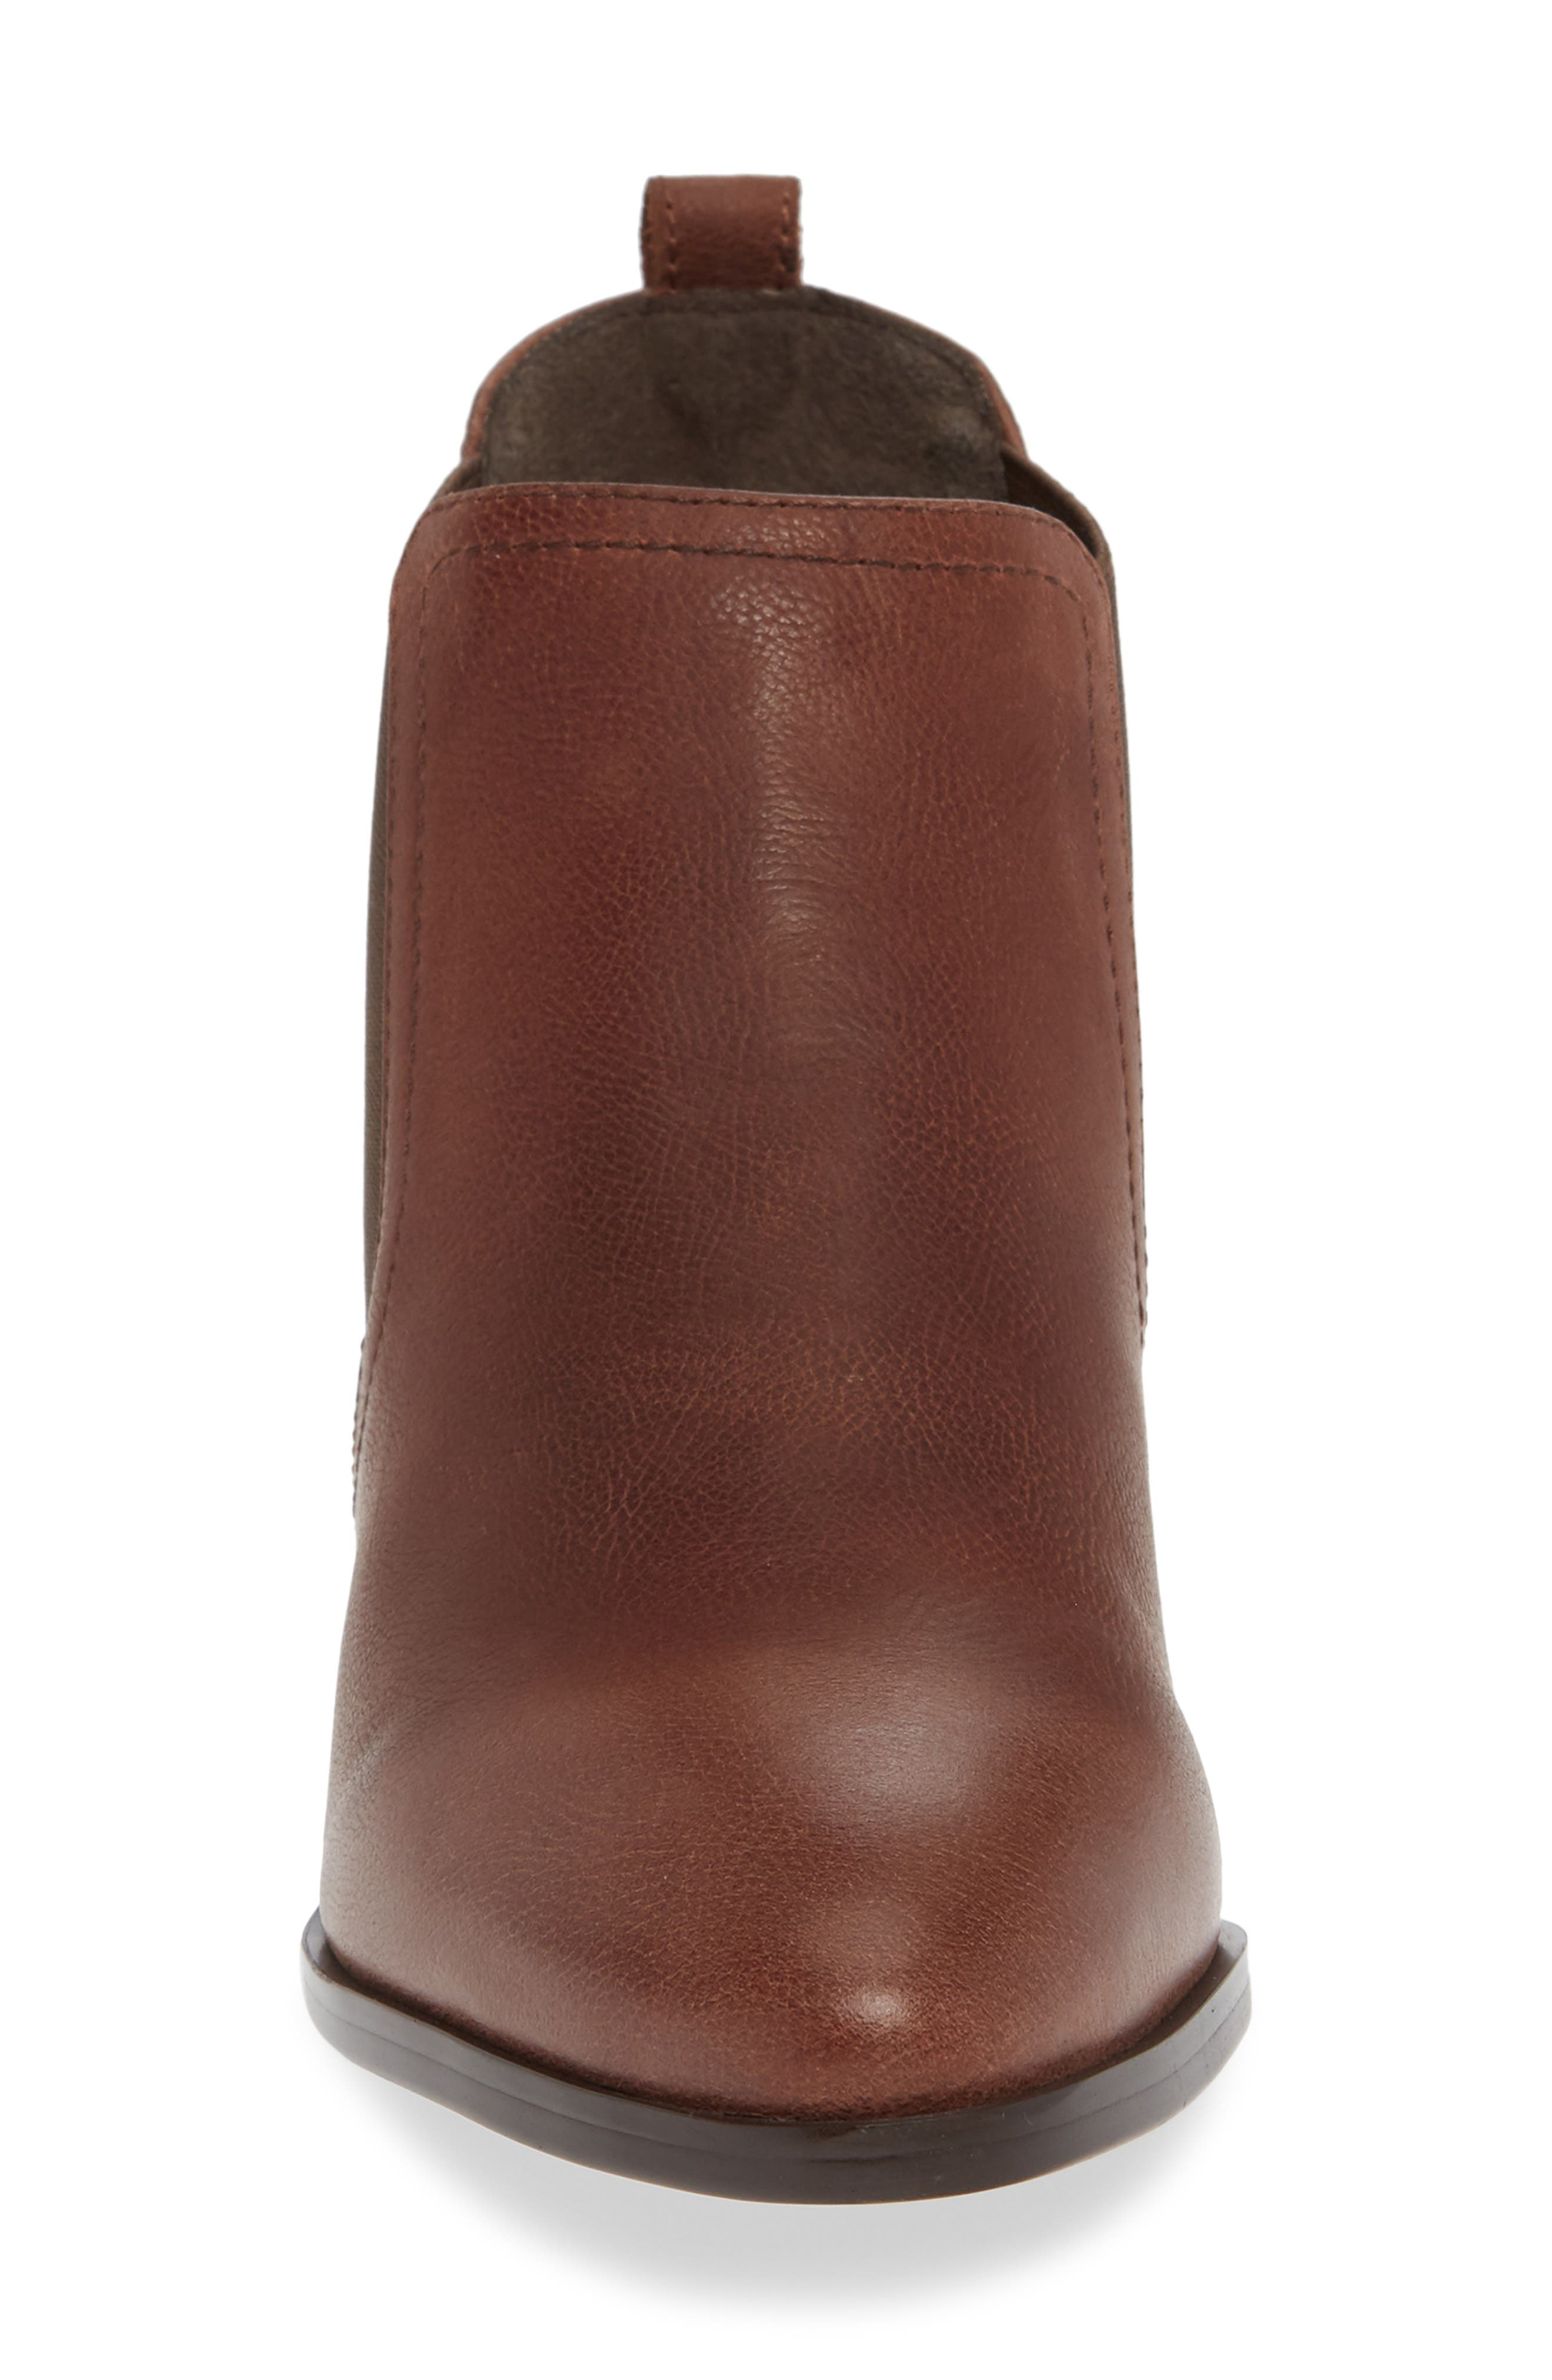 Maxie Chelsea Boot,                             Alternate thumbnail 4, color,                             LUGGAGE LEATHER